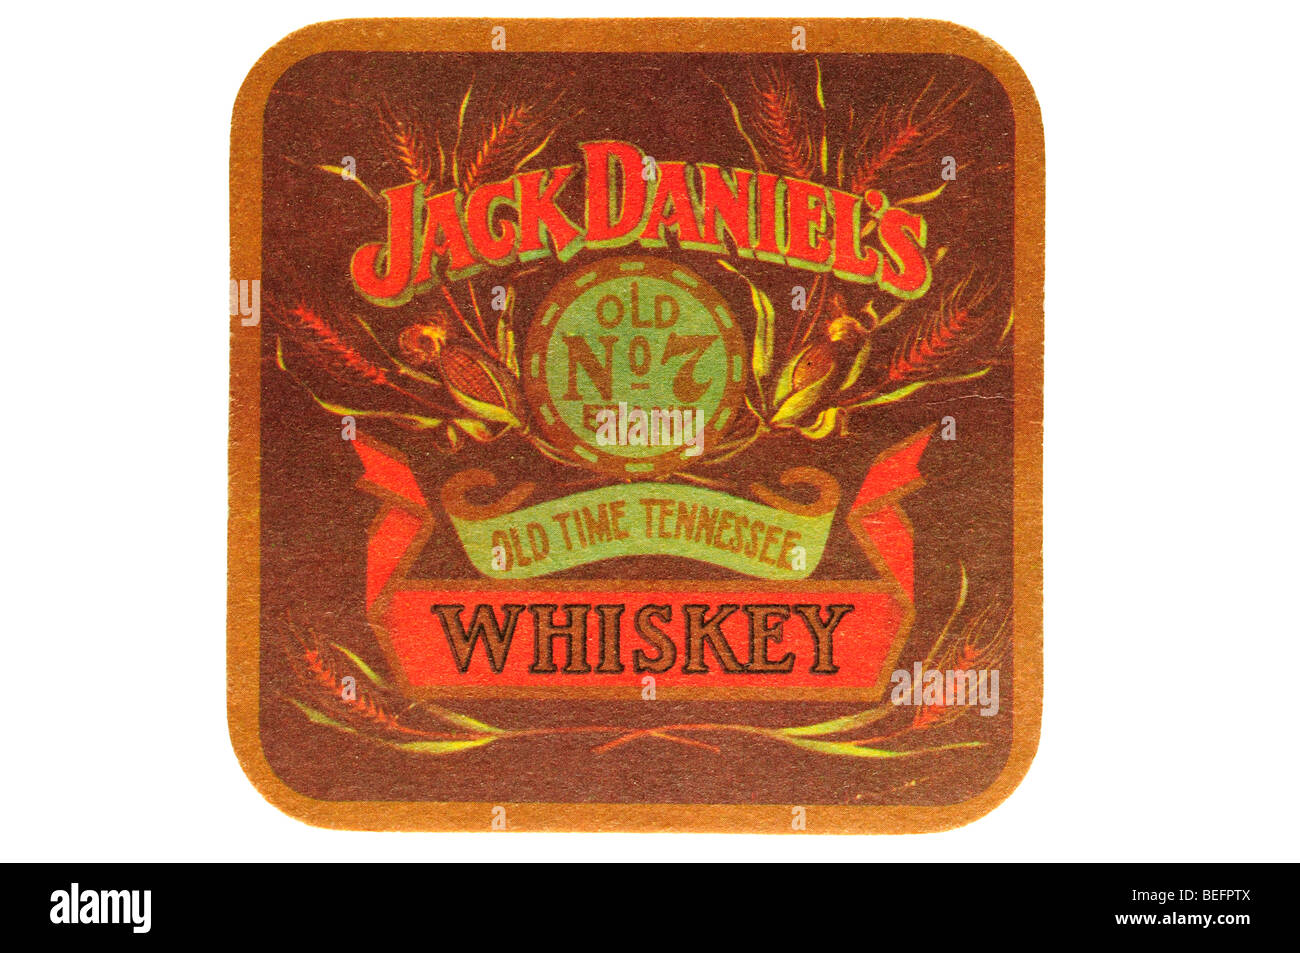 jack daniels old no 7 brand old time tennessee whiskey - Stock Image